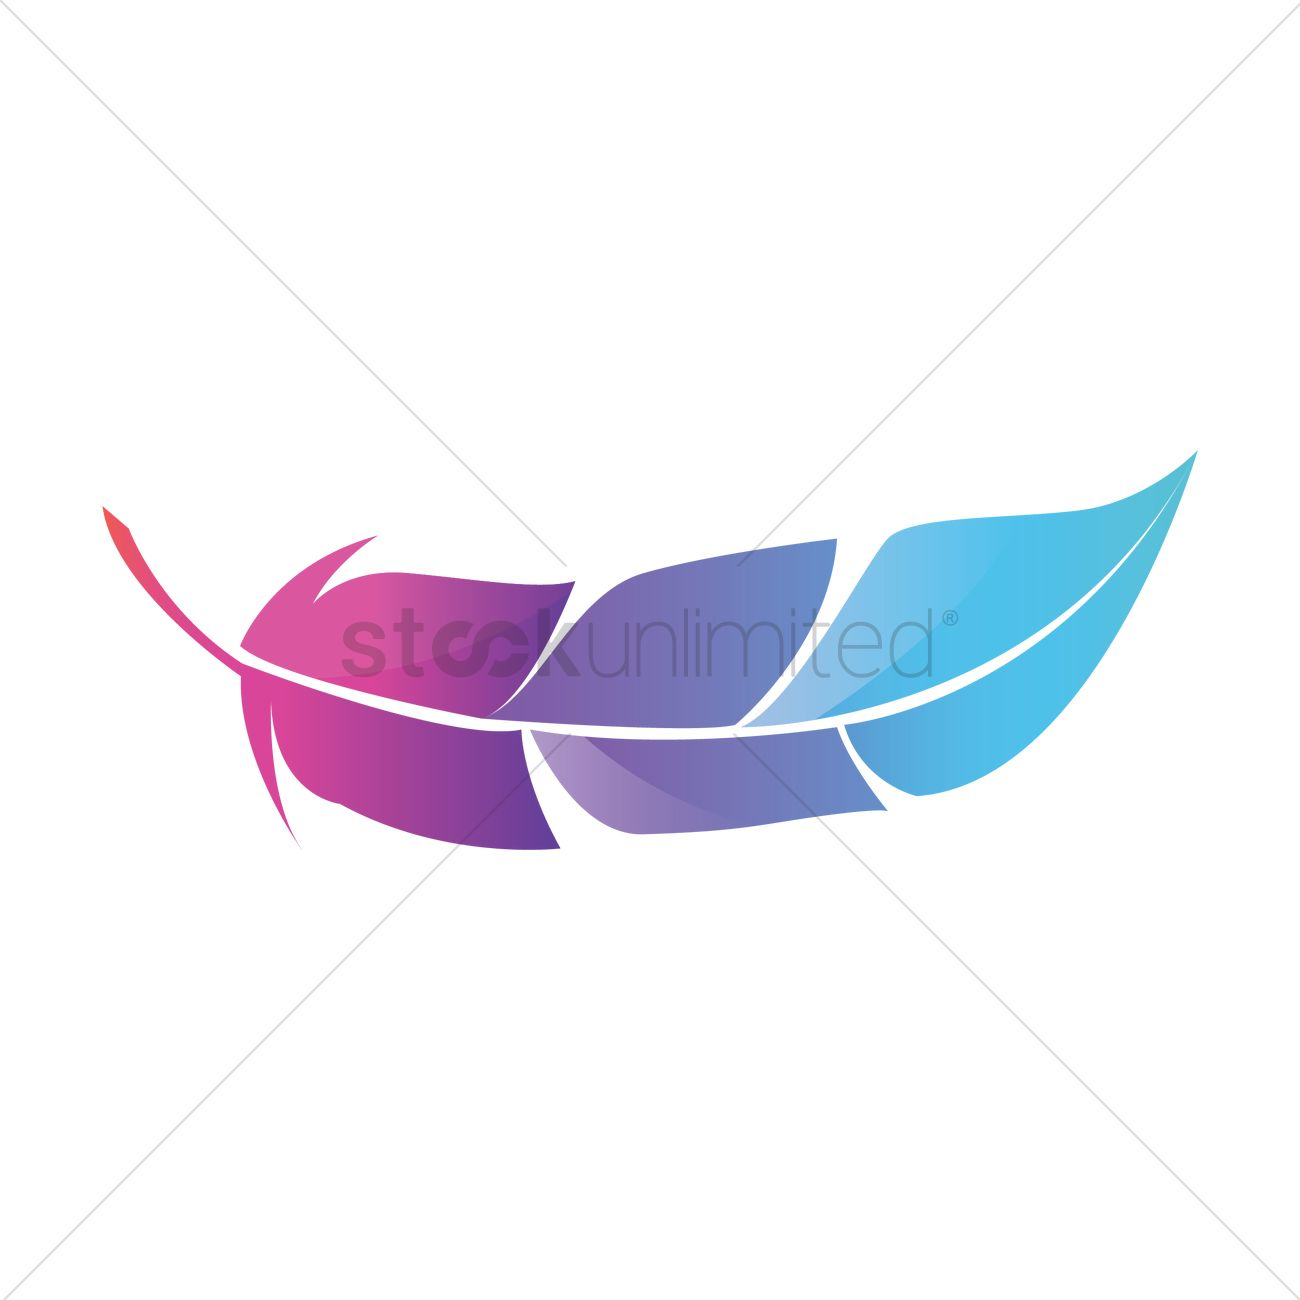 Feather icon Vector Image - 1601908 | StockUnlimited